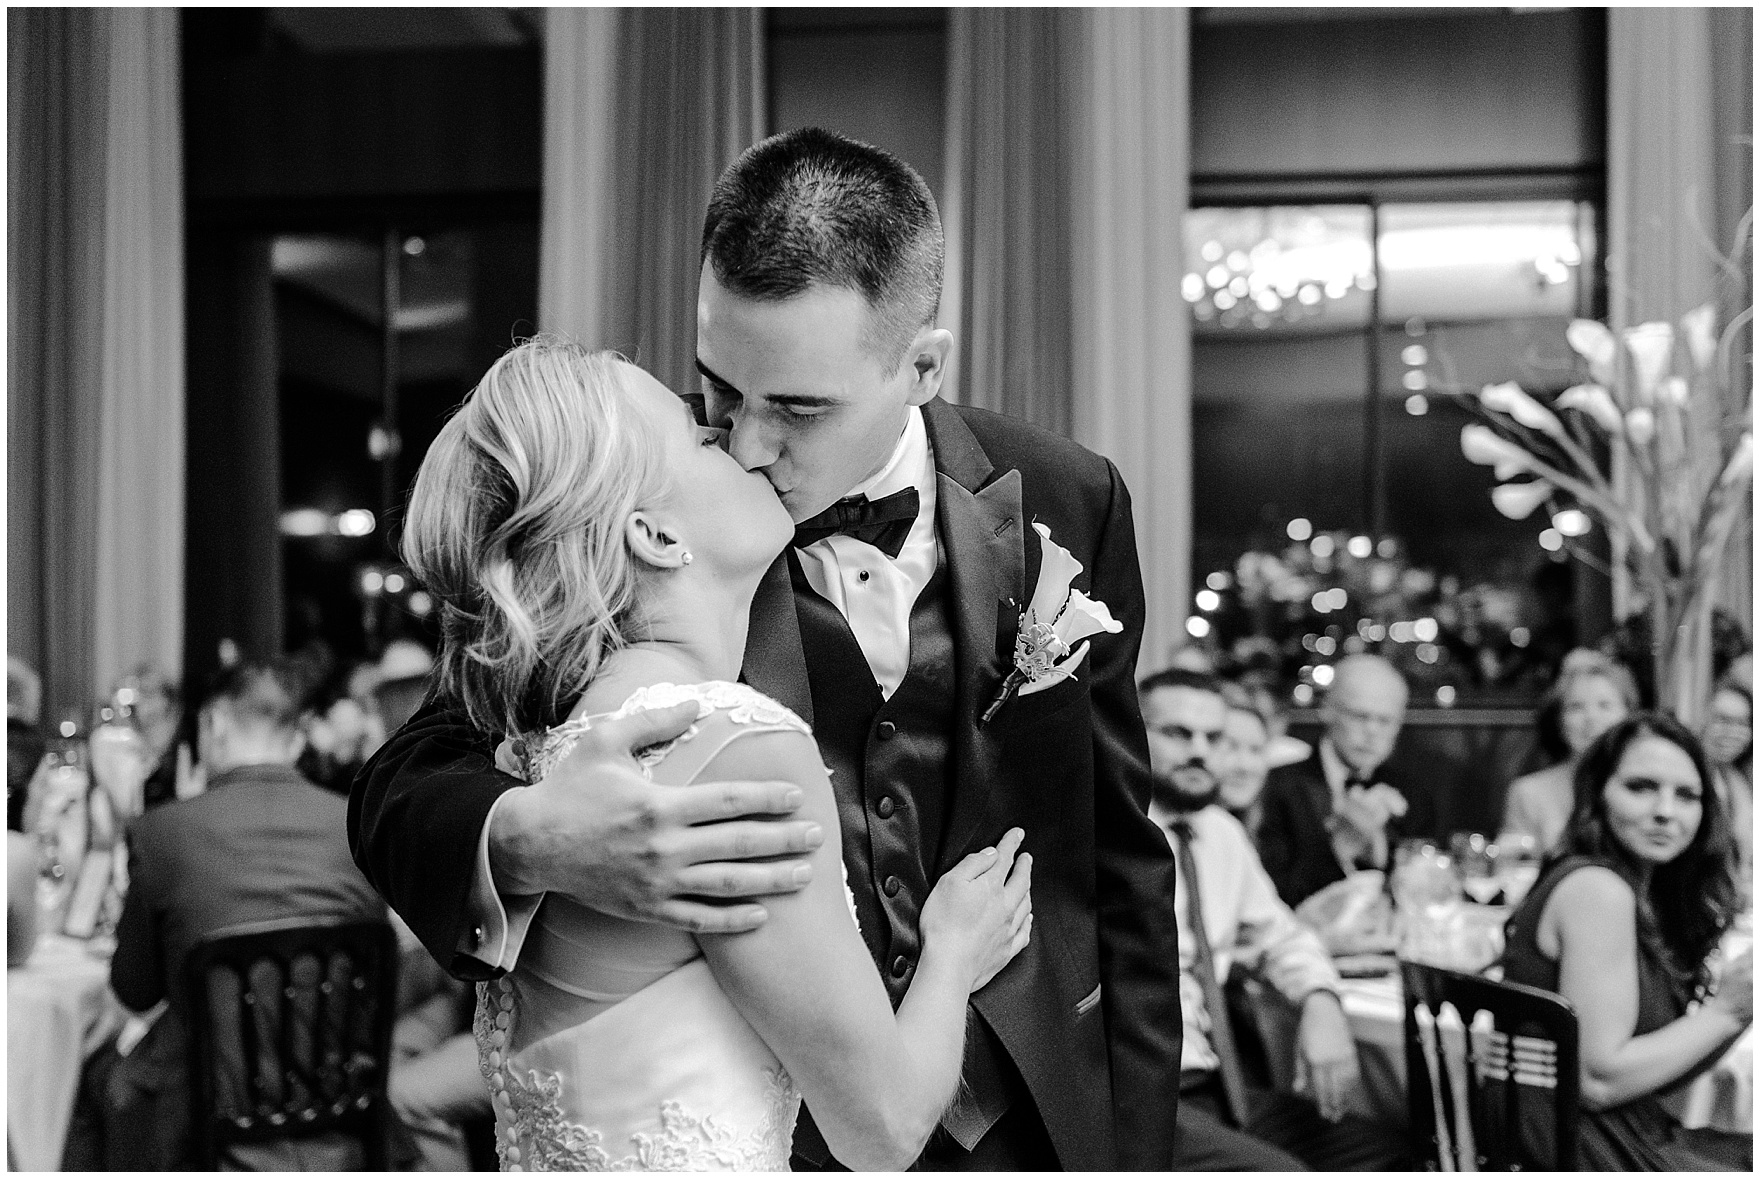 The bride and groom kiss during a Newberry Library Chicago wedding reception.